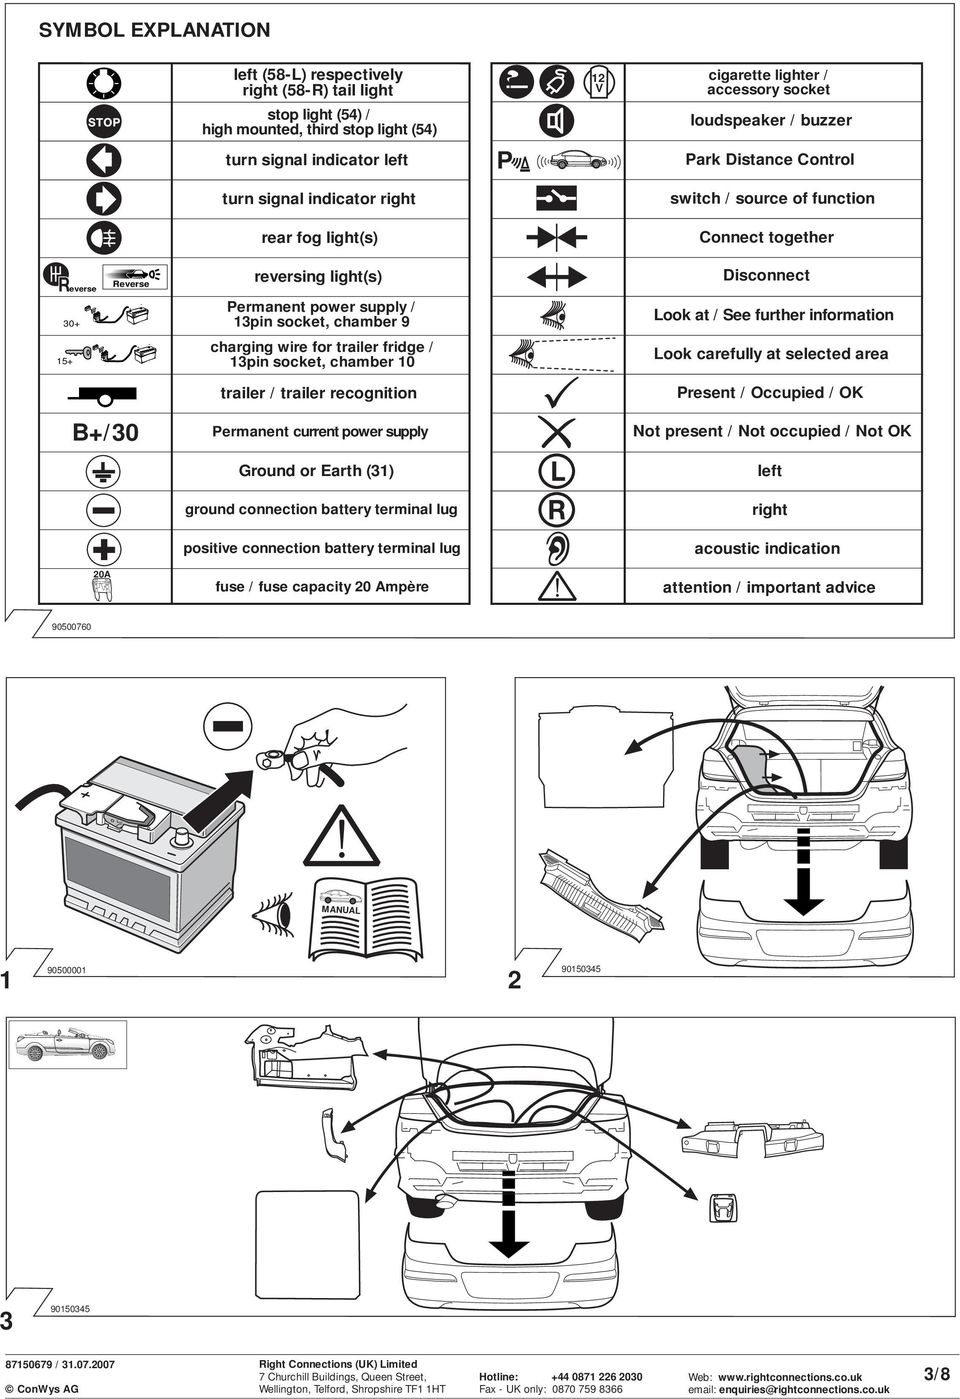 3x 10x 8 Pdf Article About Trailer Self Explanatory Standard Plug Wiring 13pin Socket Chamber 9 Disconnect Look At See Further Information 15